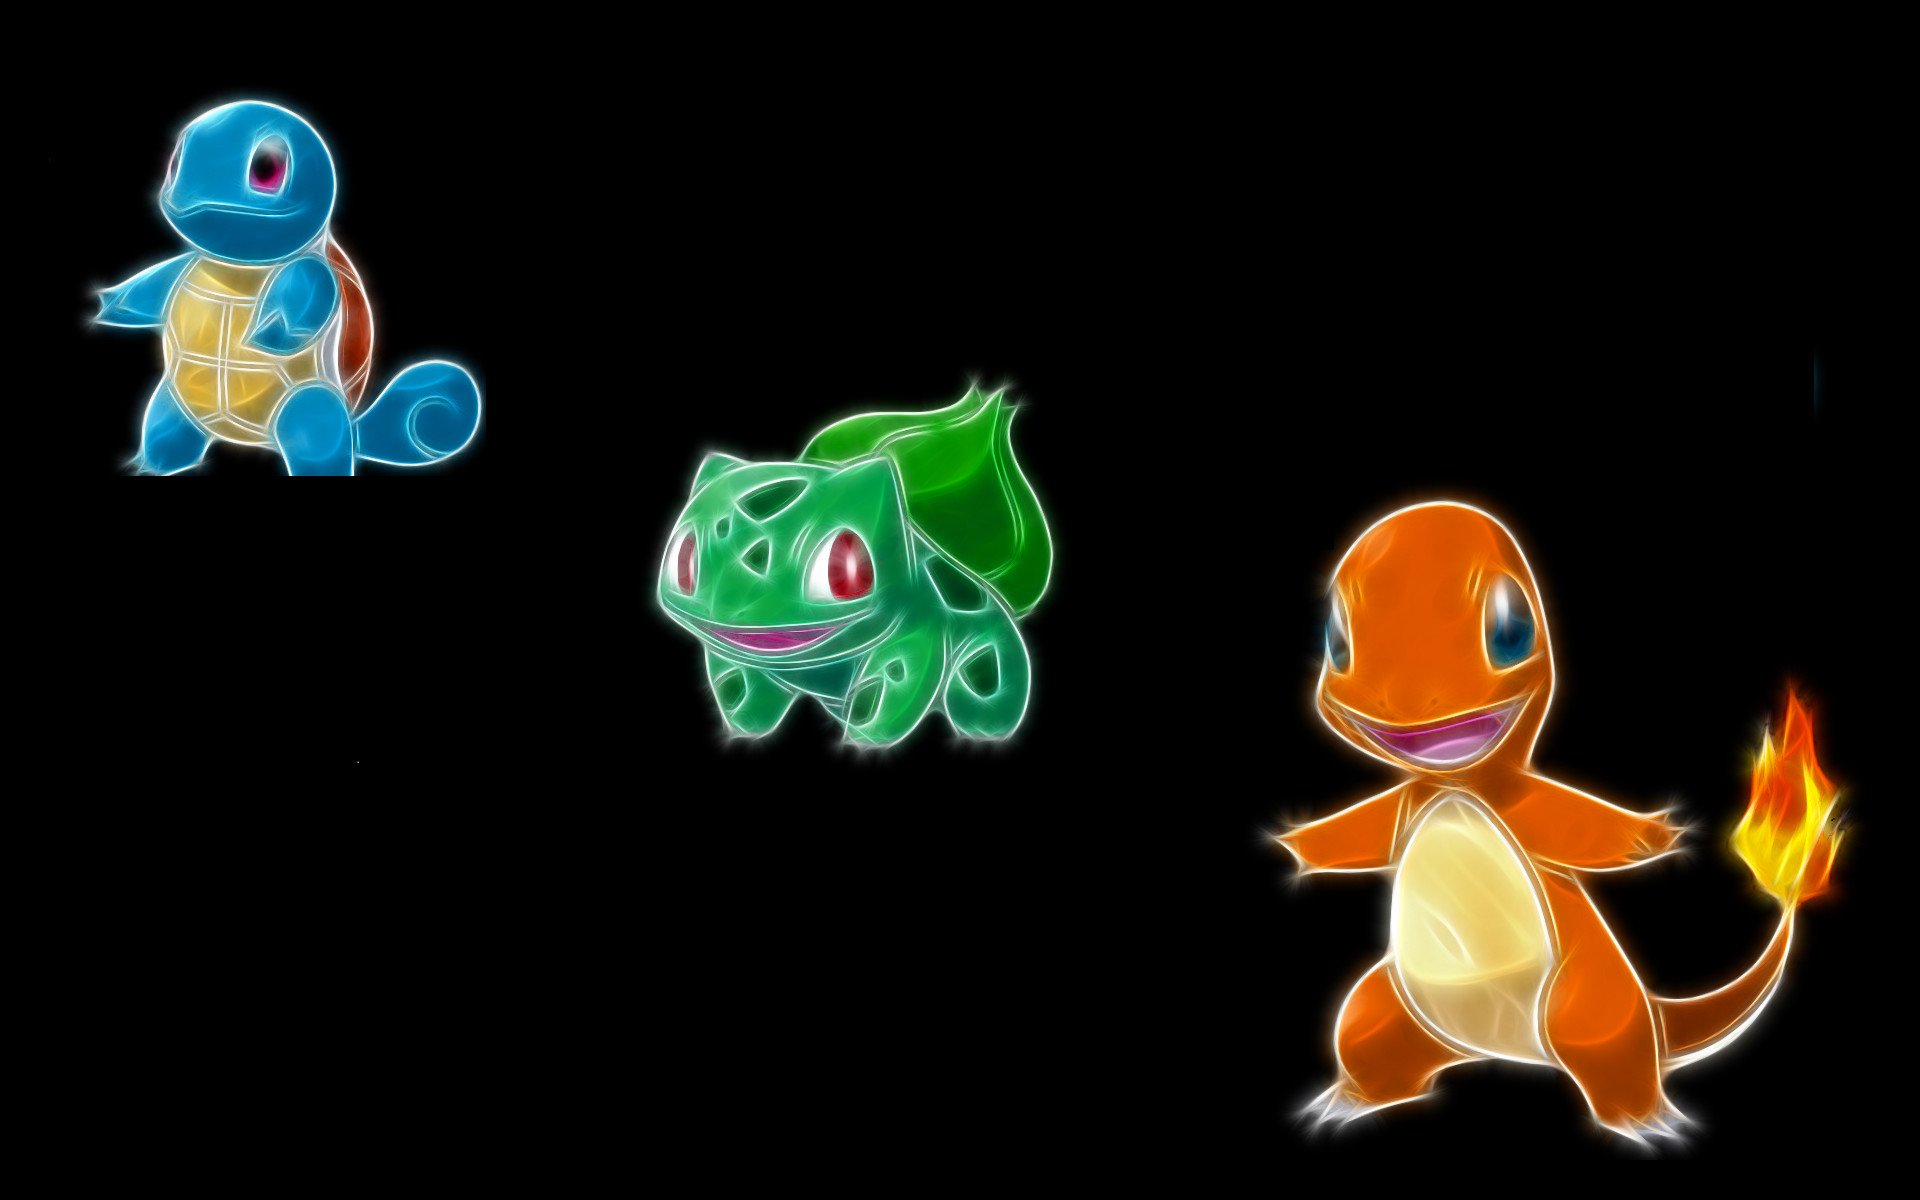 Res: 1920x1200, Pokemon, Bulbasaur, Squirtle, Charmander, black background - Free Wallpaper  / WallpaperJam.com